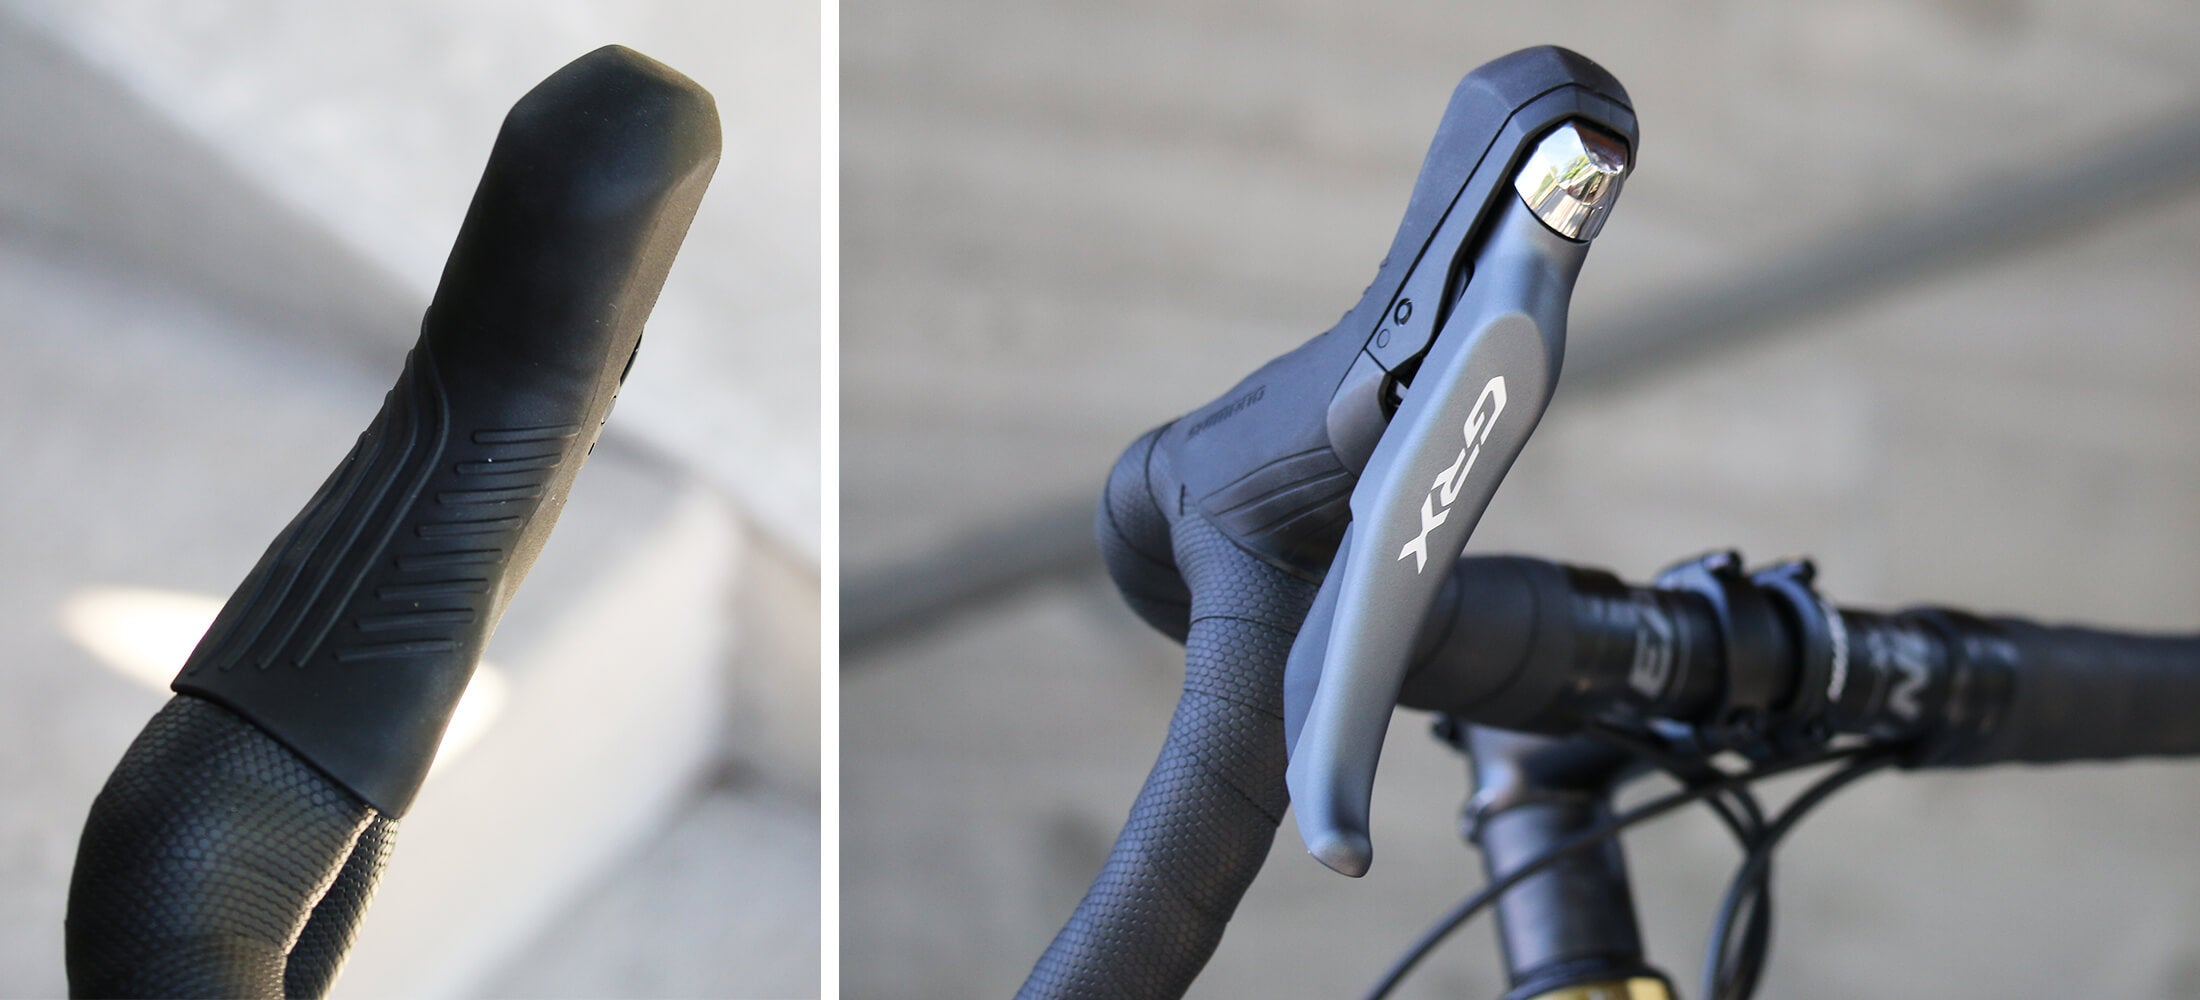 Shimano GRX Groupset - Contender Bicycles - Shifters